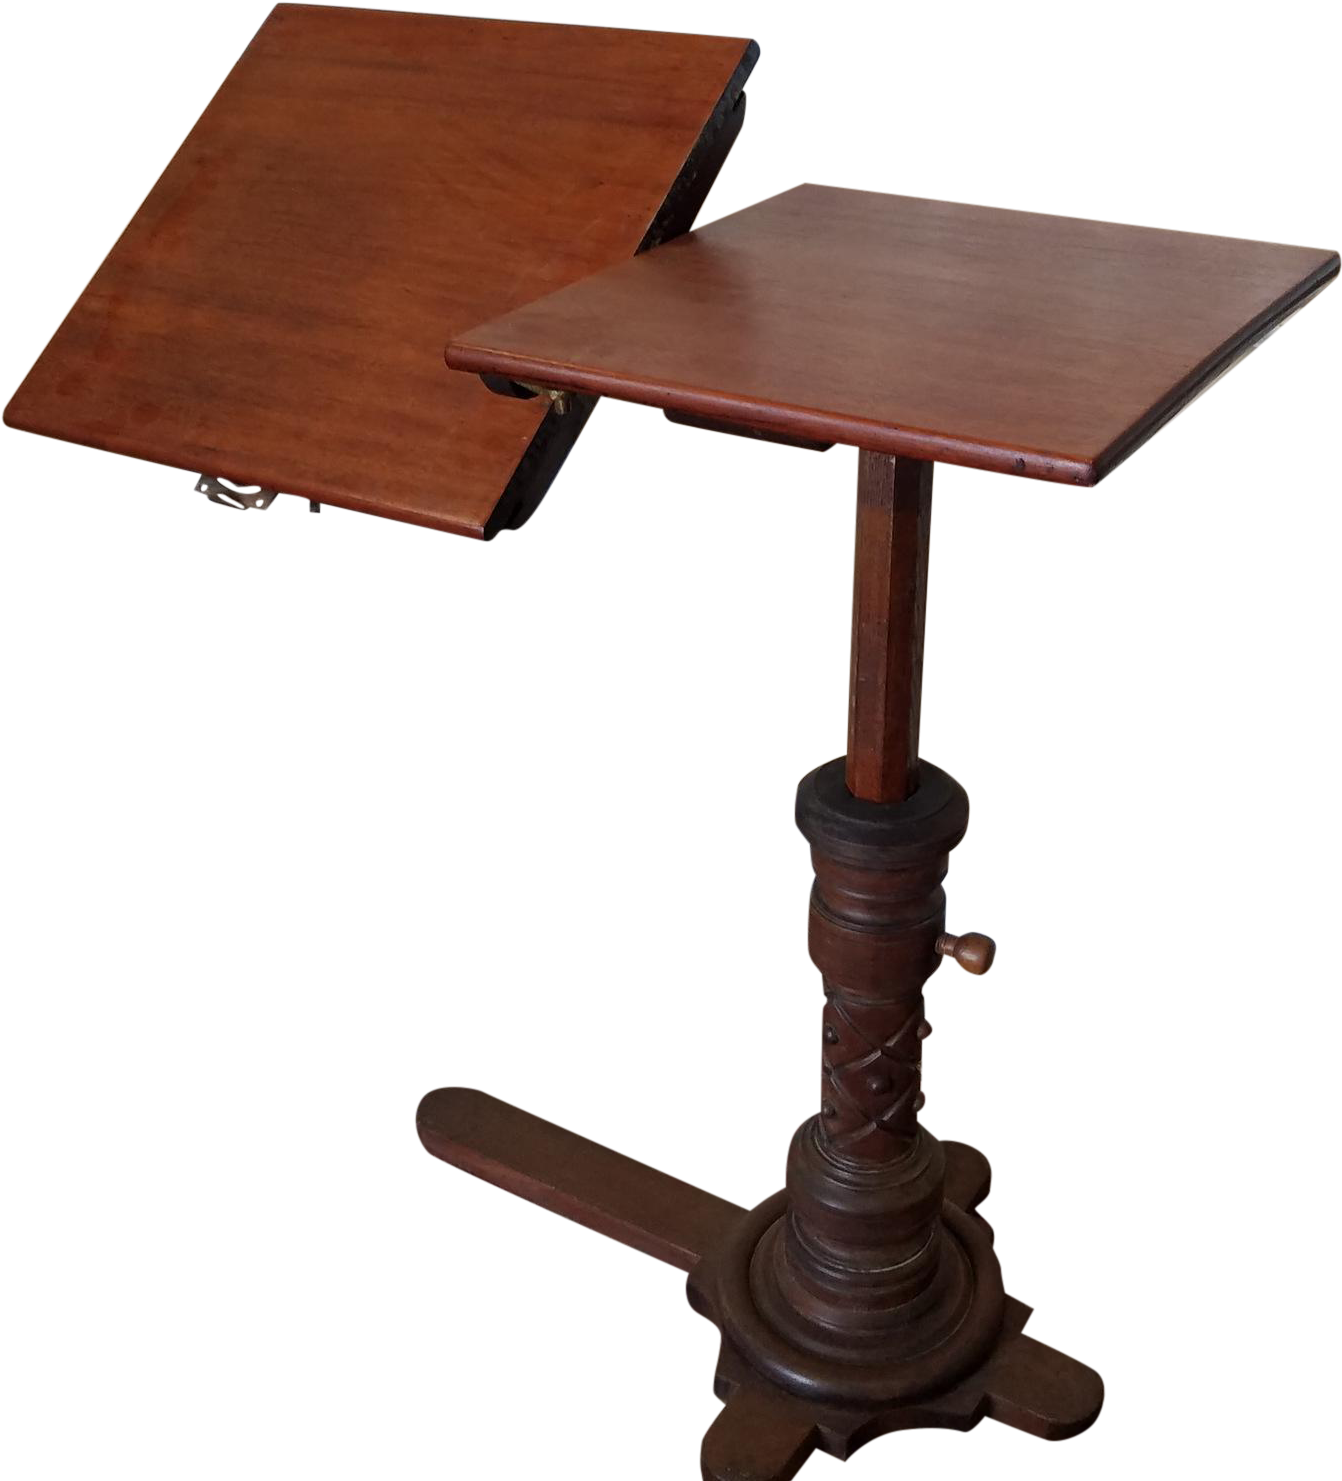 Table Grupo Formativo Auria Y Seoane S.L. Book - Material - Books On The  Desk Transparent PNG